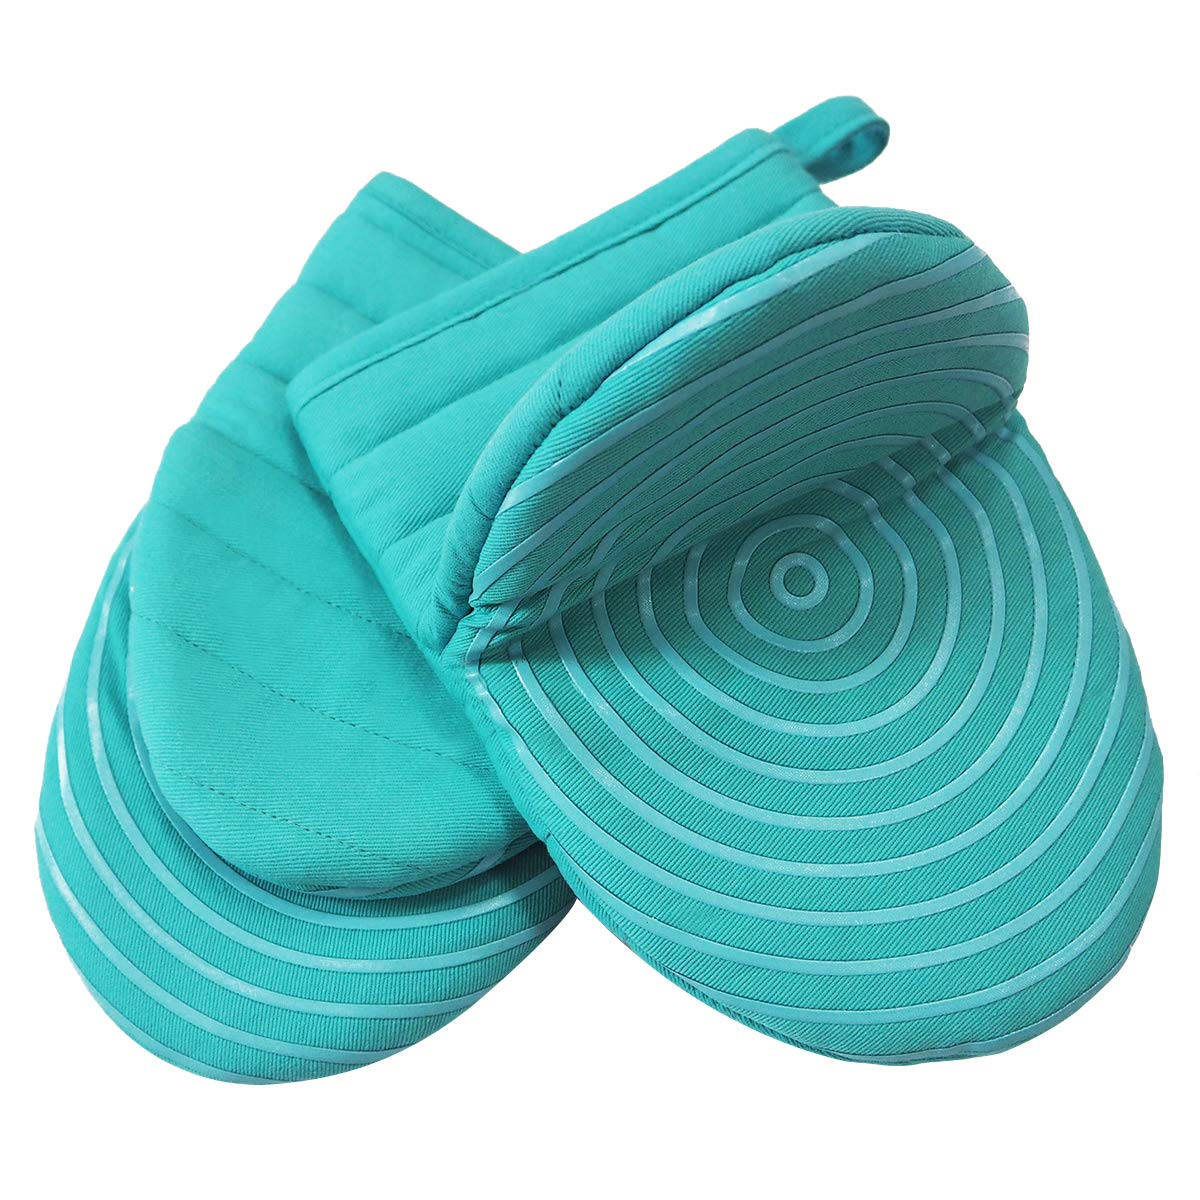 Heat Resistant Cotton Quilted Hot Mini Oven Mitts Kitchen set with Silicone Printing Non-slip Grip, Puppet Small Oven Gloves set of 2 for BBQ Cooking Baking, Grilling, Machine Washable Women Men Aqua